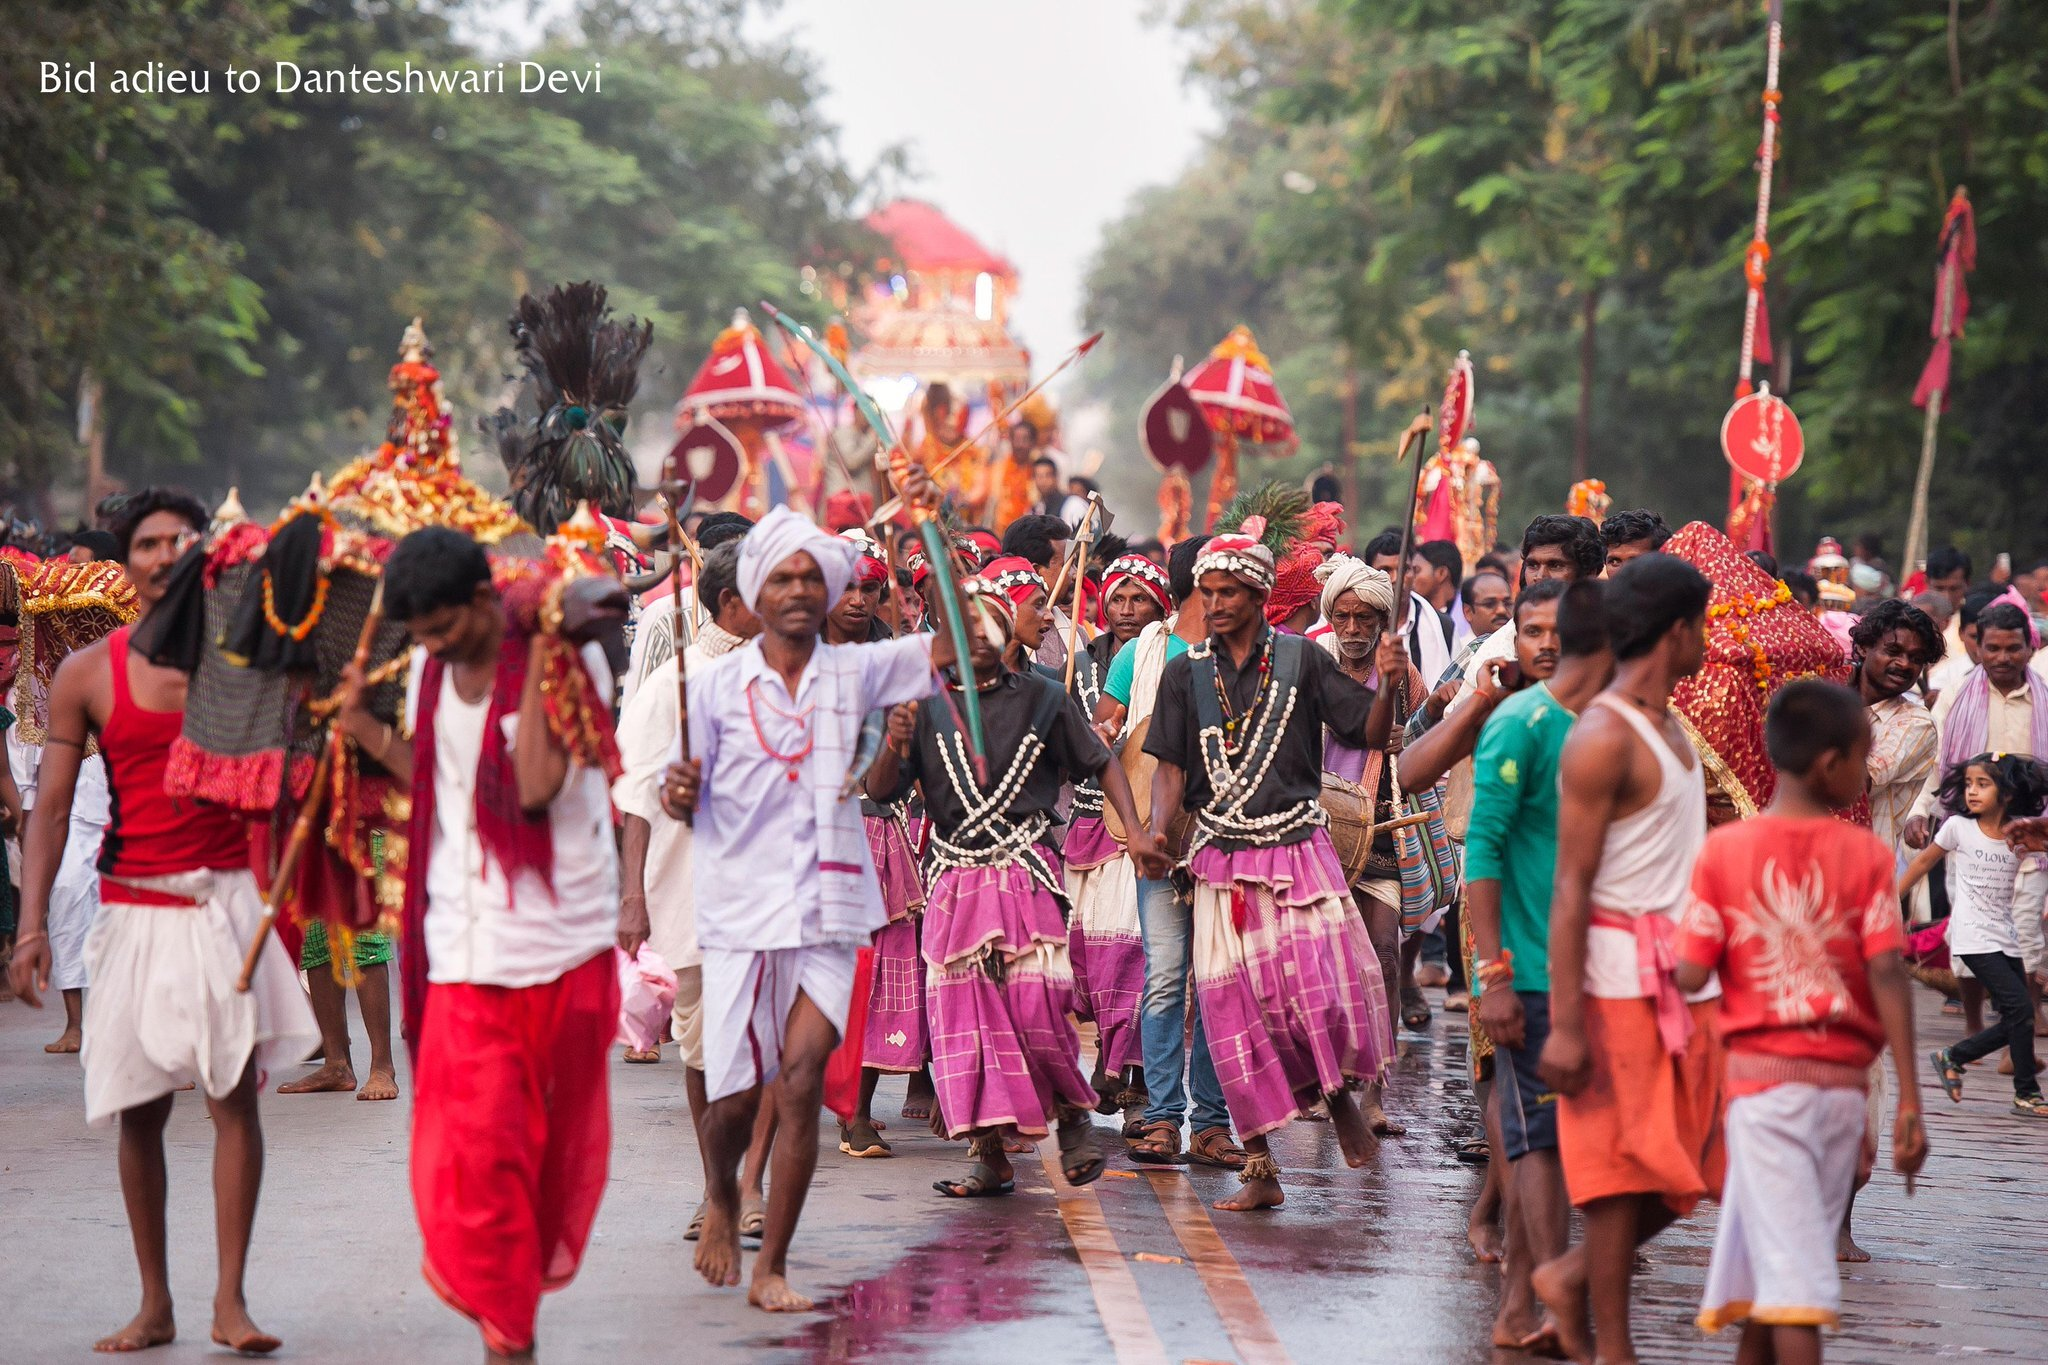 Tribals carry Danteshwari Devi's procession on Dussehra, 2015